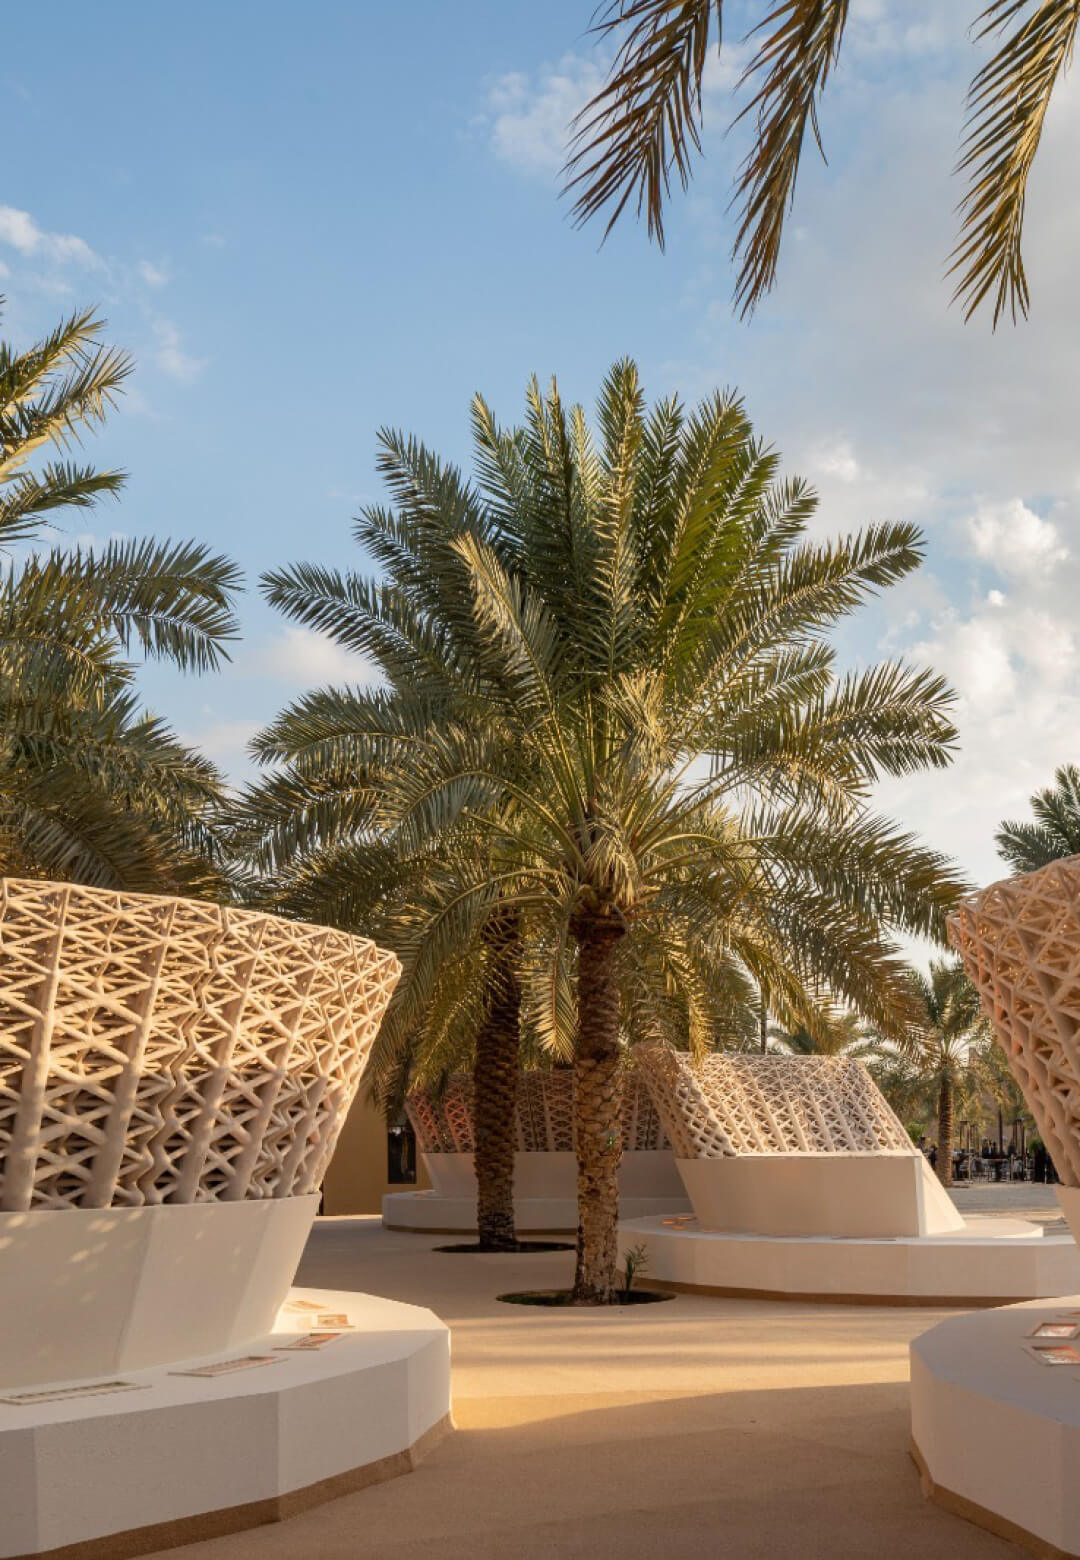 <em>The Sandwaves</em> exhibited at the Diriyah Season in Saudi Arabia | The Sandwaves | Mamou-Mani and Studio Precht | STIRworld